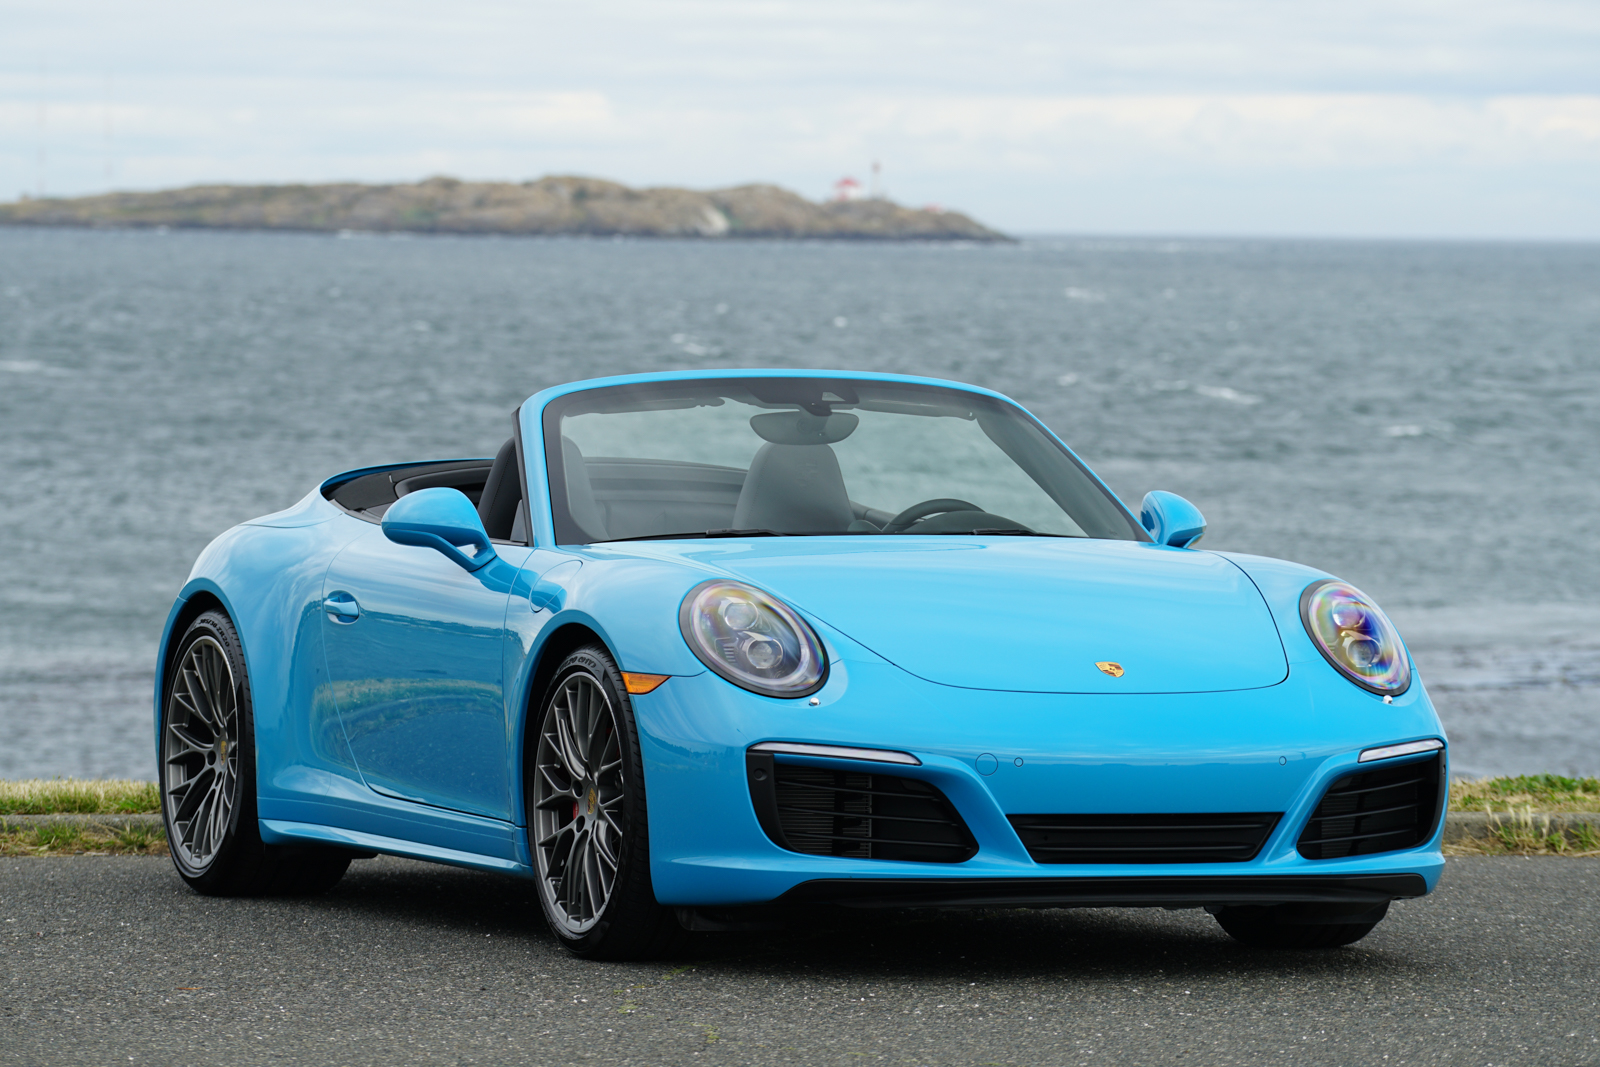 2017 Porsche 911 Carrera 4s Cabriolet For Sale Silver Arrow Cars Ltd